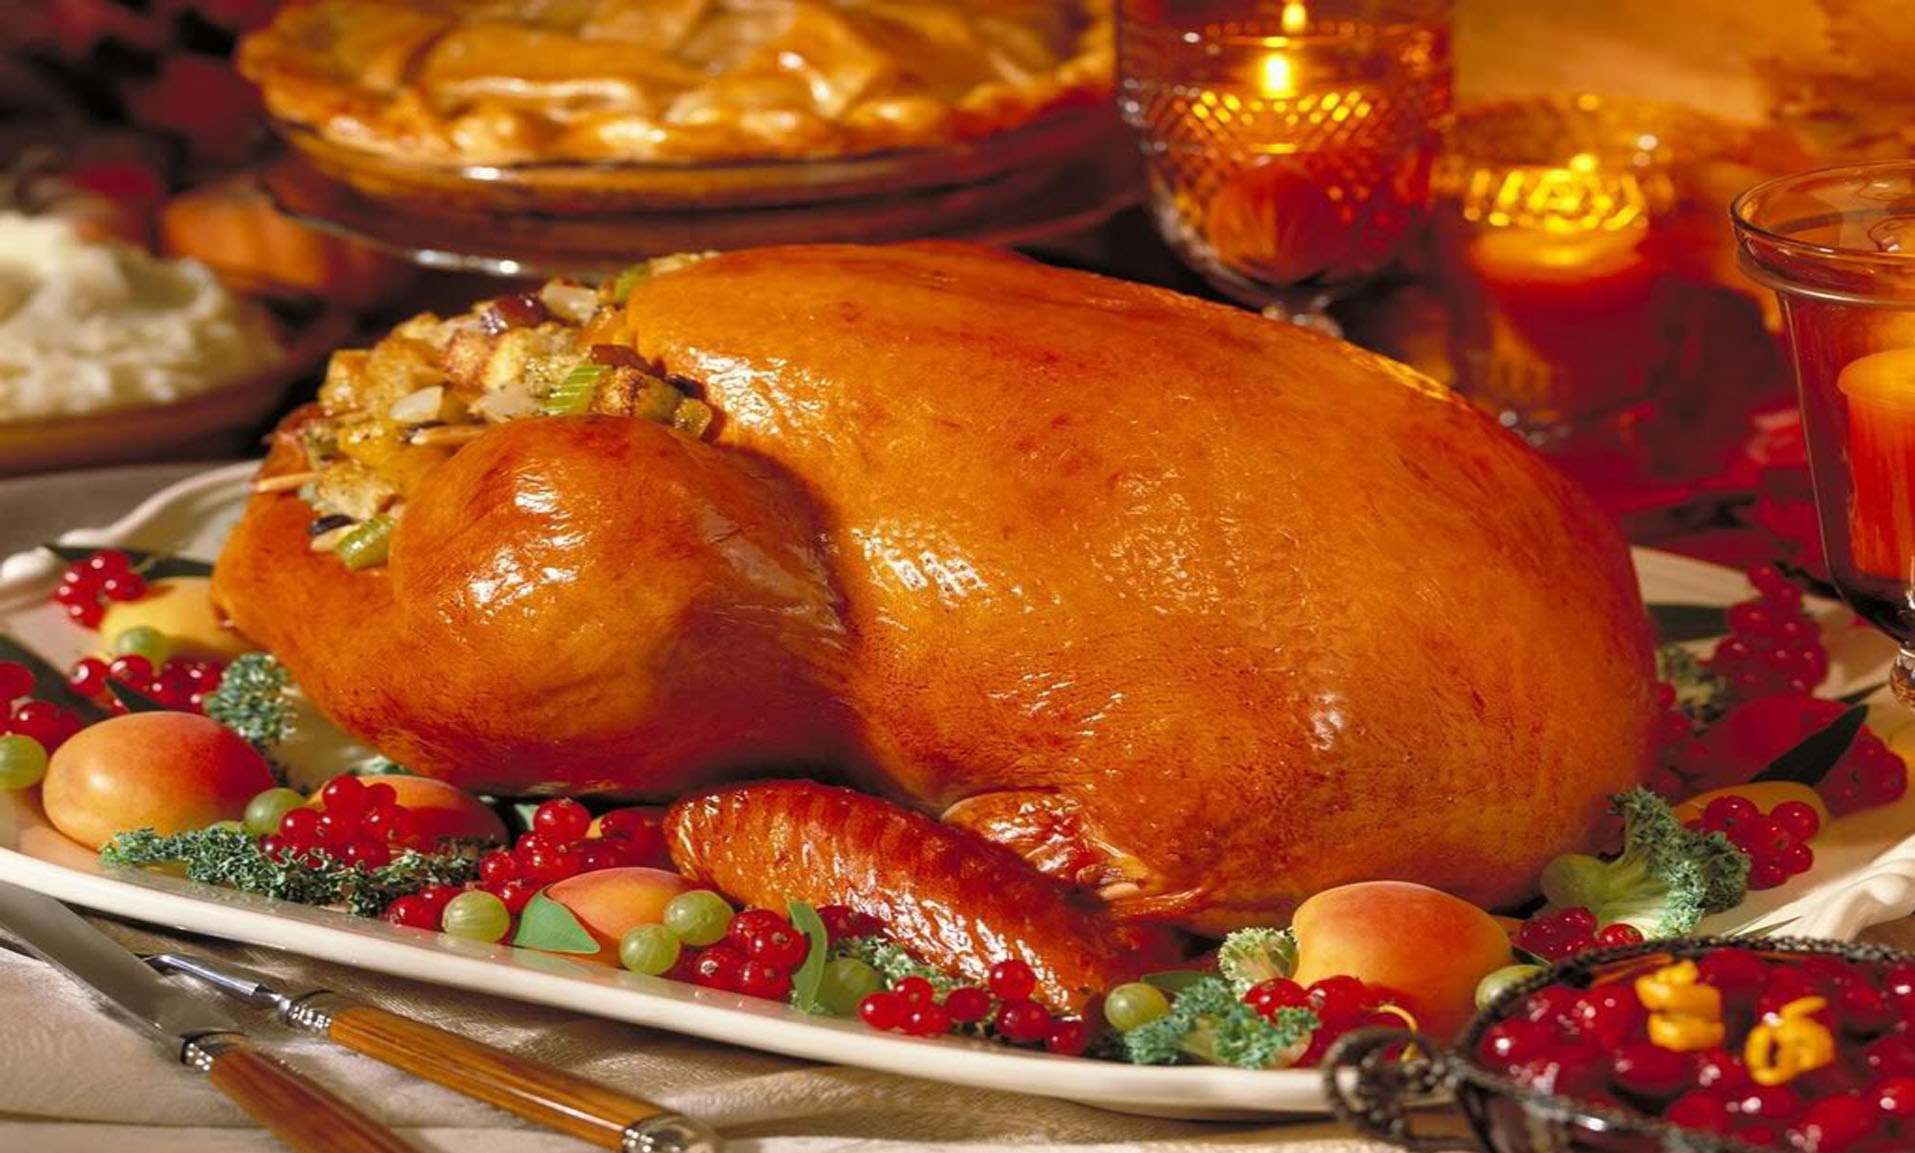 Pictures Of Turkey For Thanksgiving  Thanksgiving Roasted Turkey